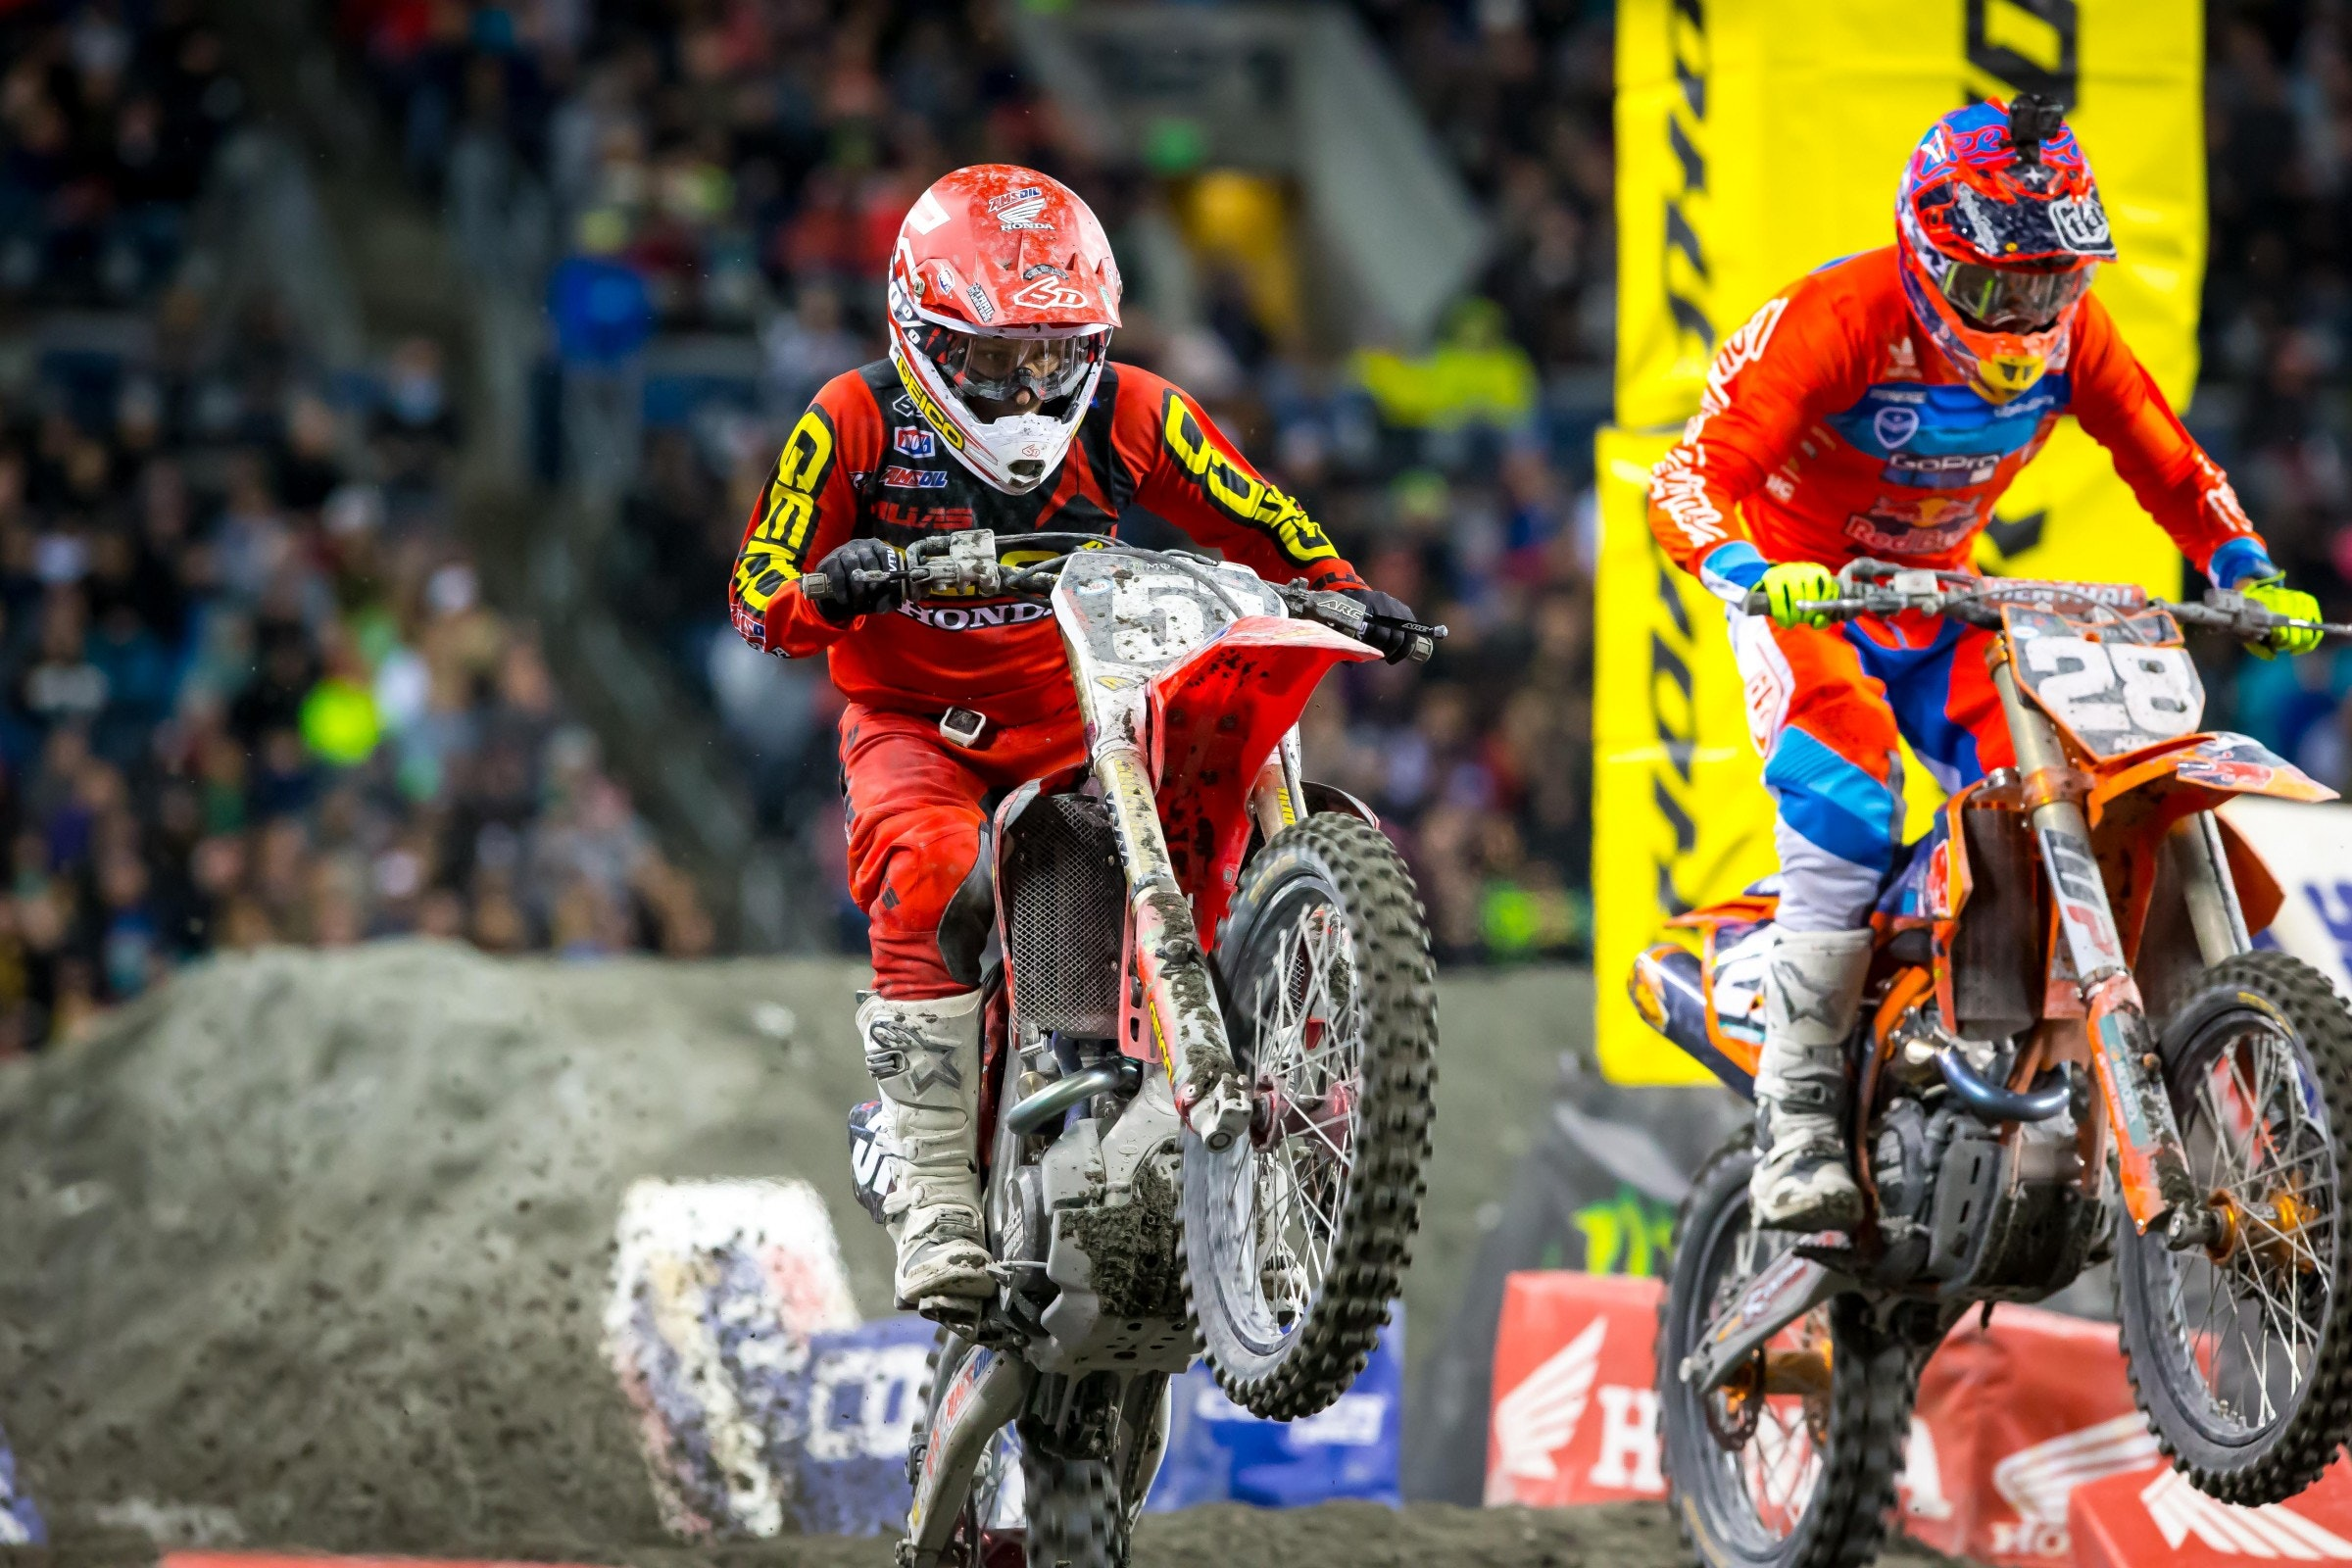 Decotis (left) and Oldenburg (right) went at it for their first career podiums. Oldenburg got the spot and Decotis crashed on the last lap trying to get him back.